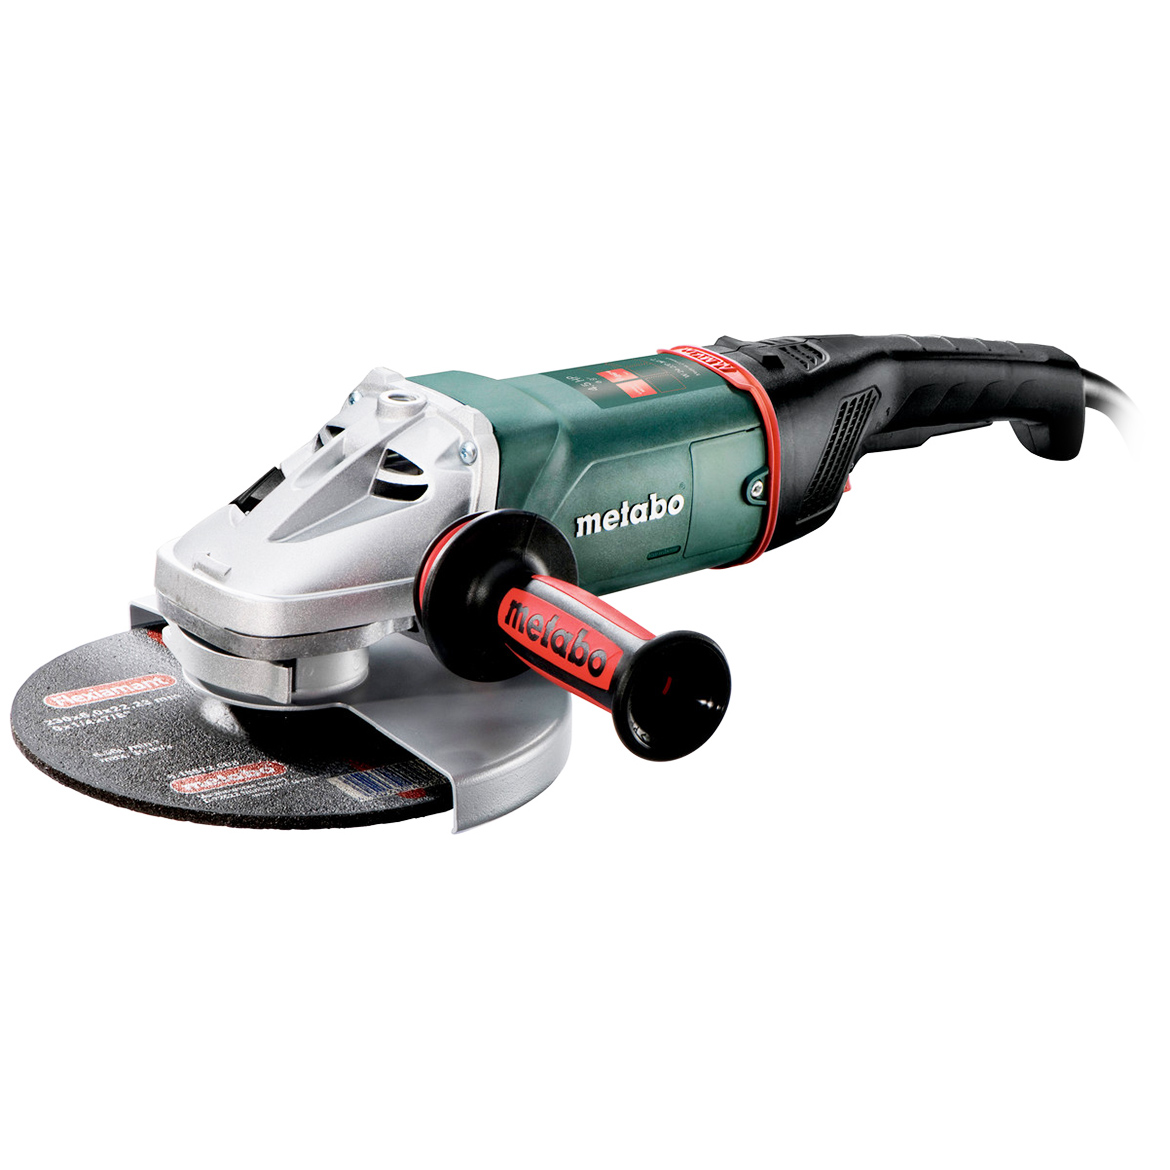 Metabo 606467420 15-Amp 6,600 RPM Corded Angle Grinder with Deadman/Lock-Off